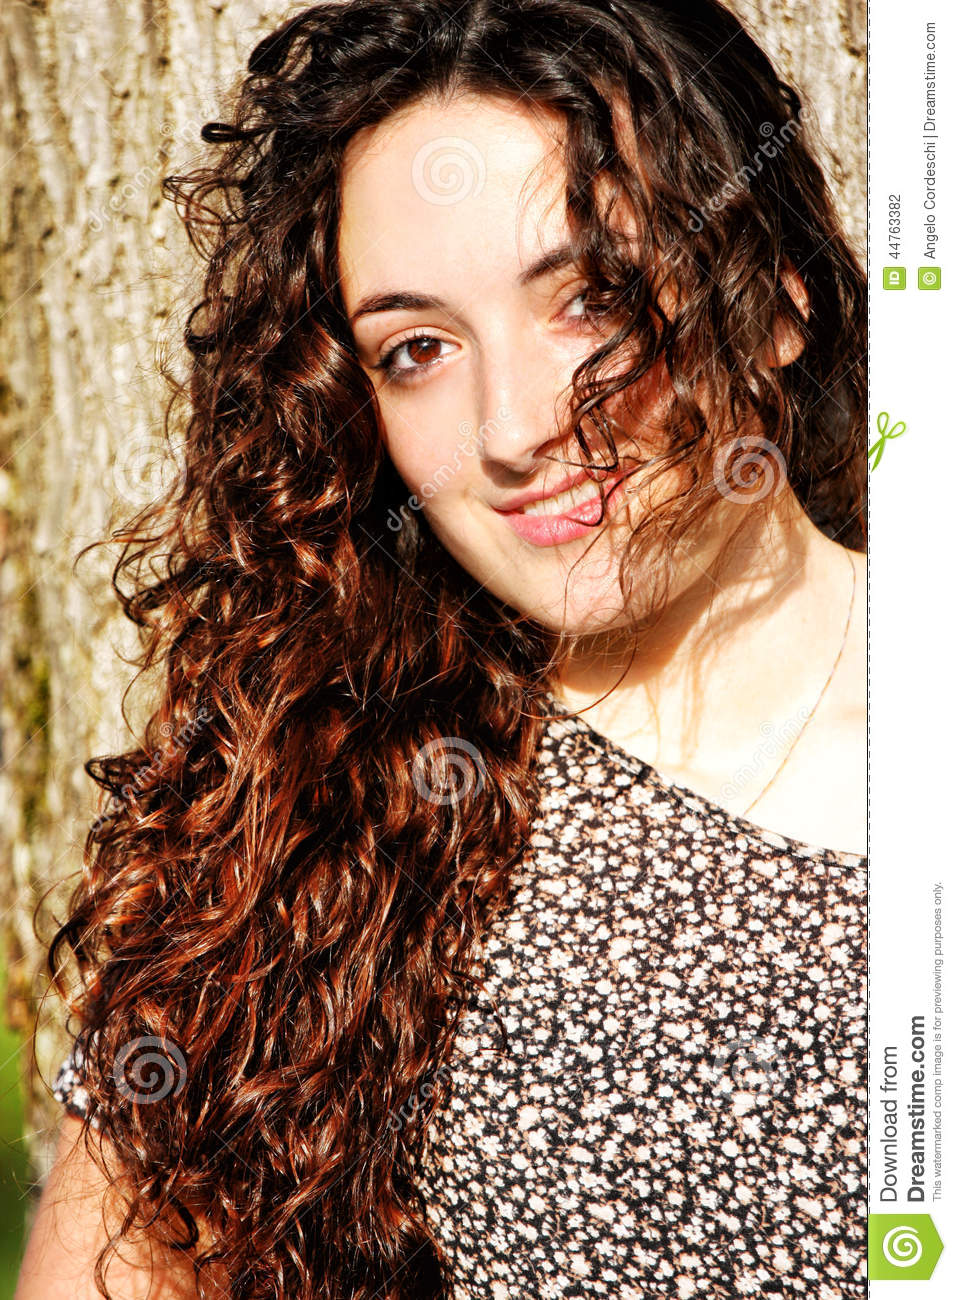 Curly Girl Smiling Stock Photo Image Of Adorable Angel 44763382